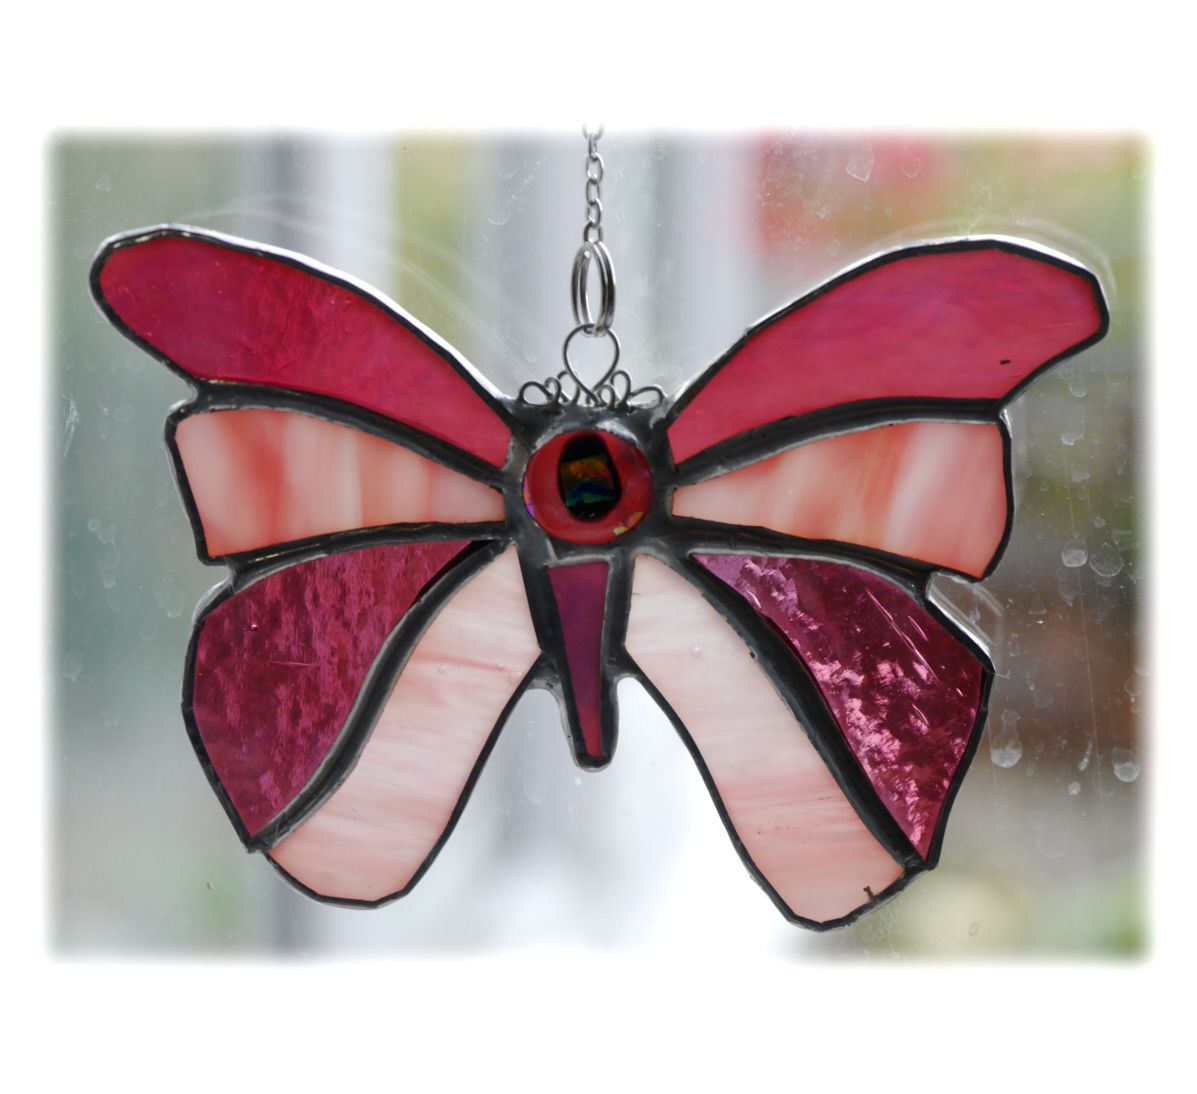 Birthstone Butterfly 047 Pink #1808 @SANDON @181201 @11.50